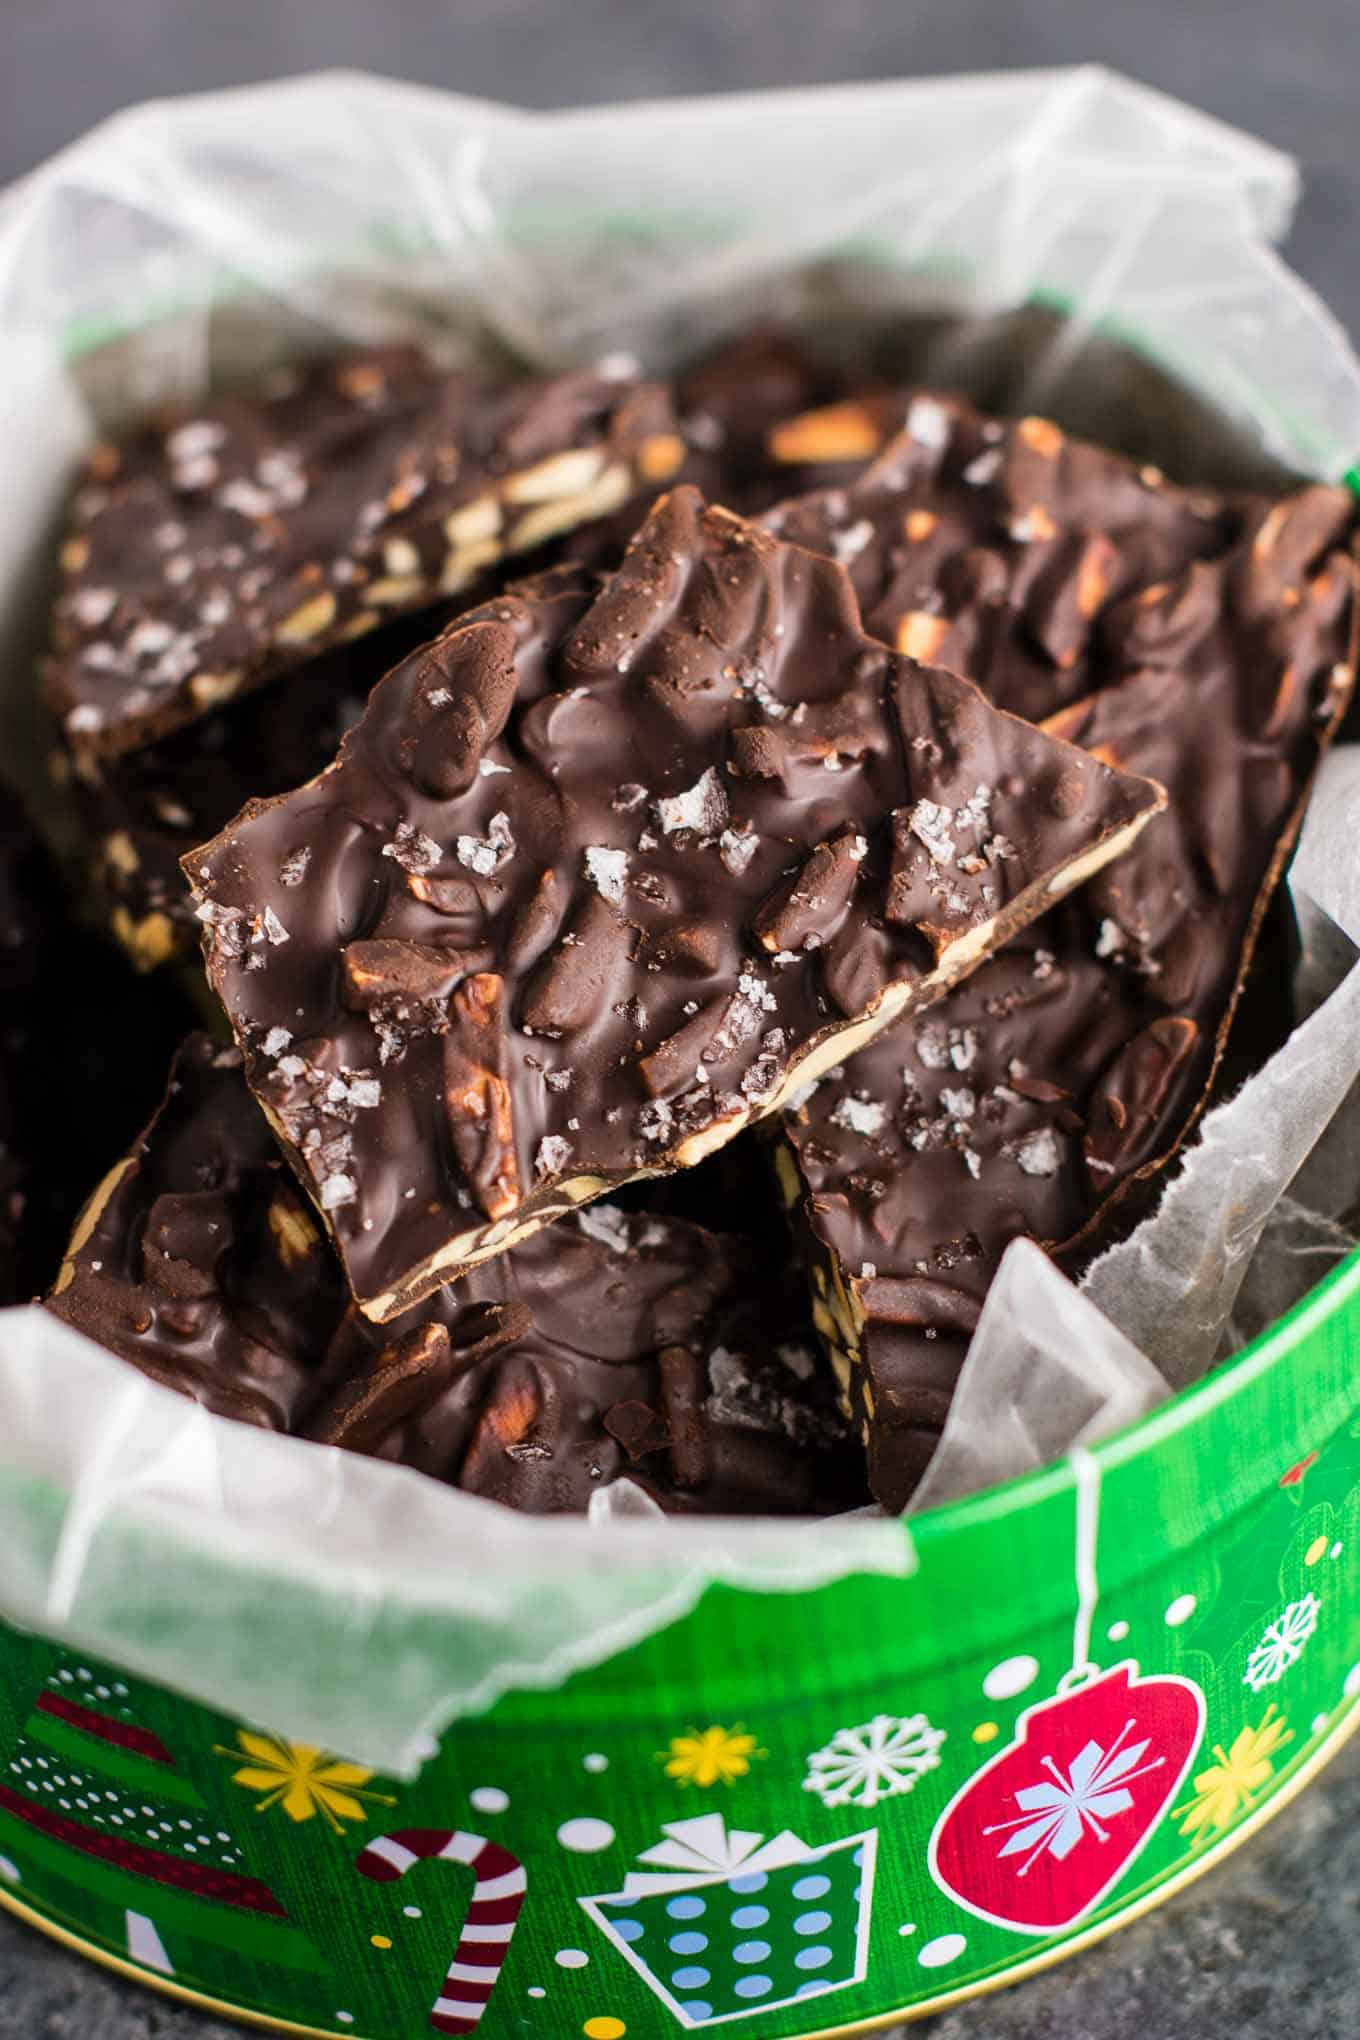 Dark Chocolate Almond bark with sea salt. A seriously addictive + easy to make dessert! (just 5 ingredients!) #vegan #almondbark #desserts #christmas #darkchocolate #healthy